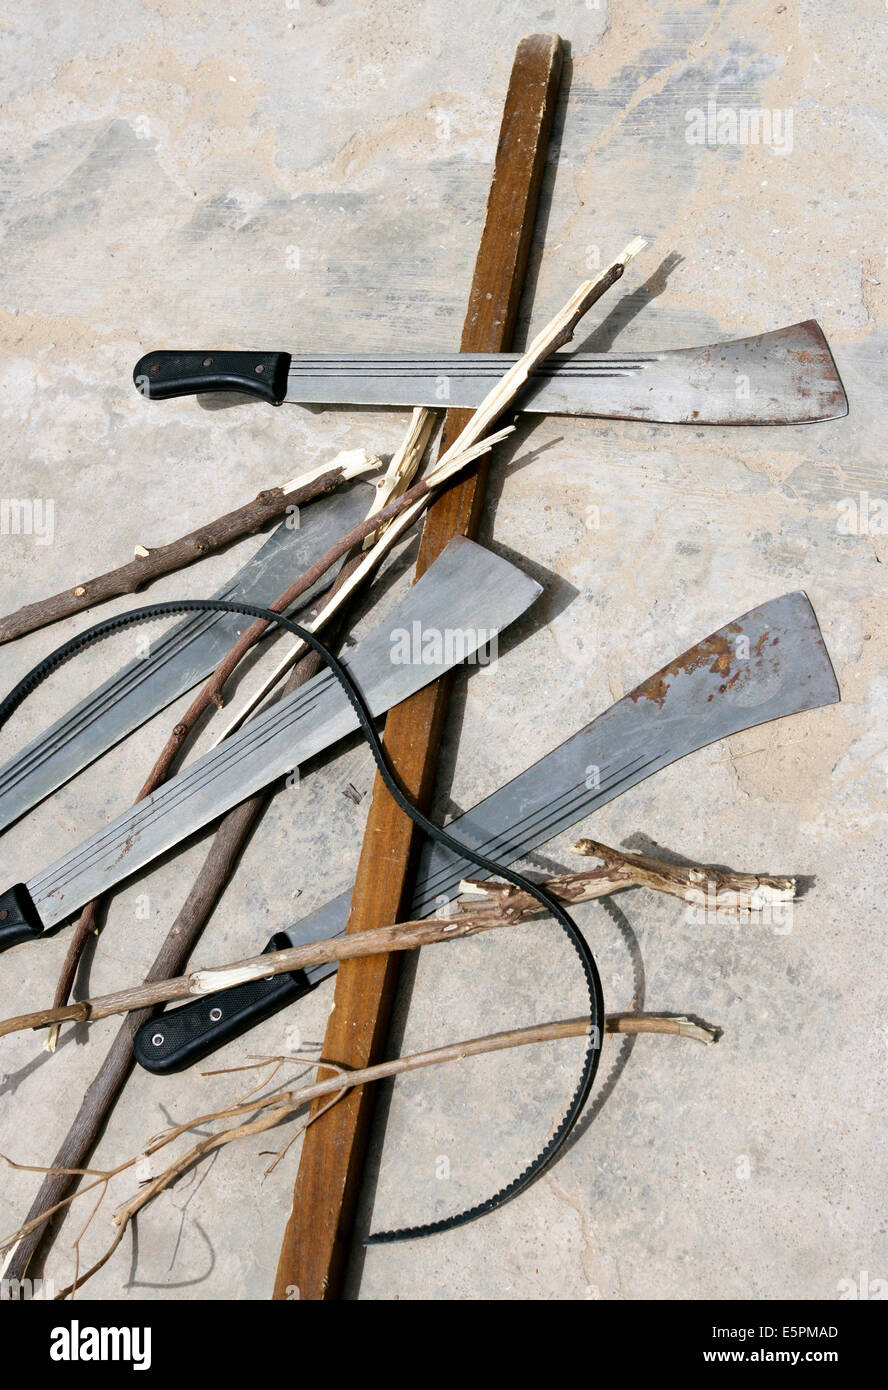 small weapons, clutches, knifes, sticks, laid down in a form of a christian cross. City of Maiduguri, Nigeria - Stock Image